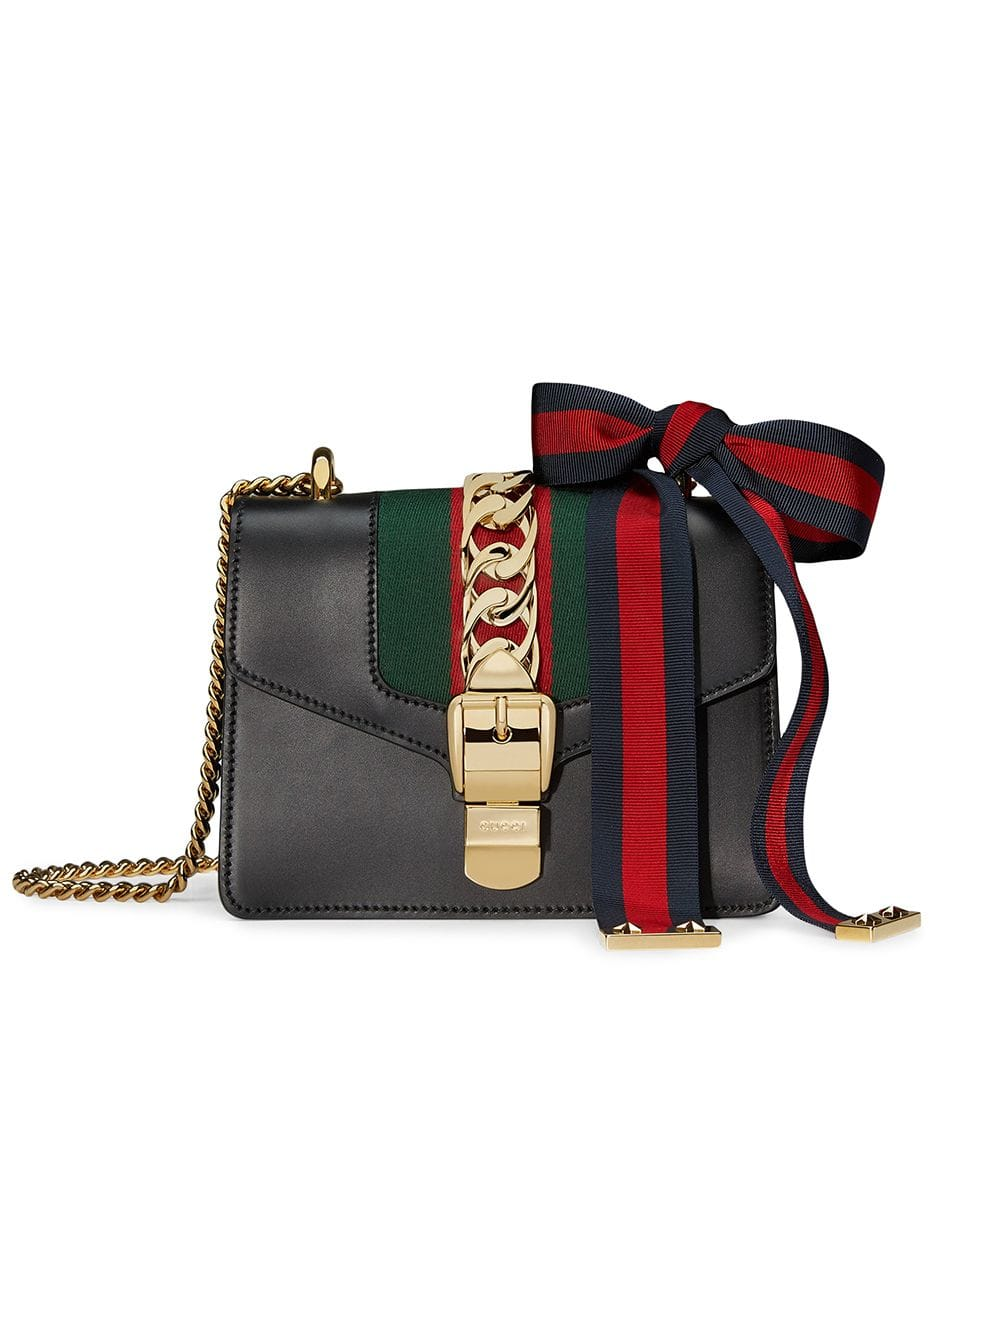 Gucci Sylvie Small leather bag - Iconics Preloved Luxury